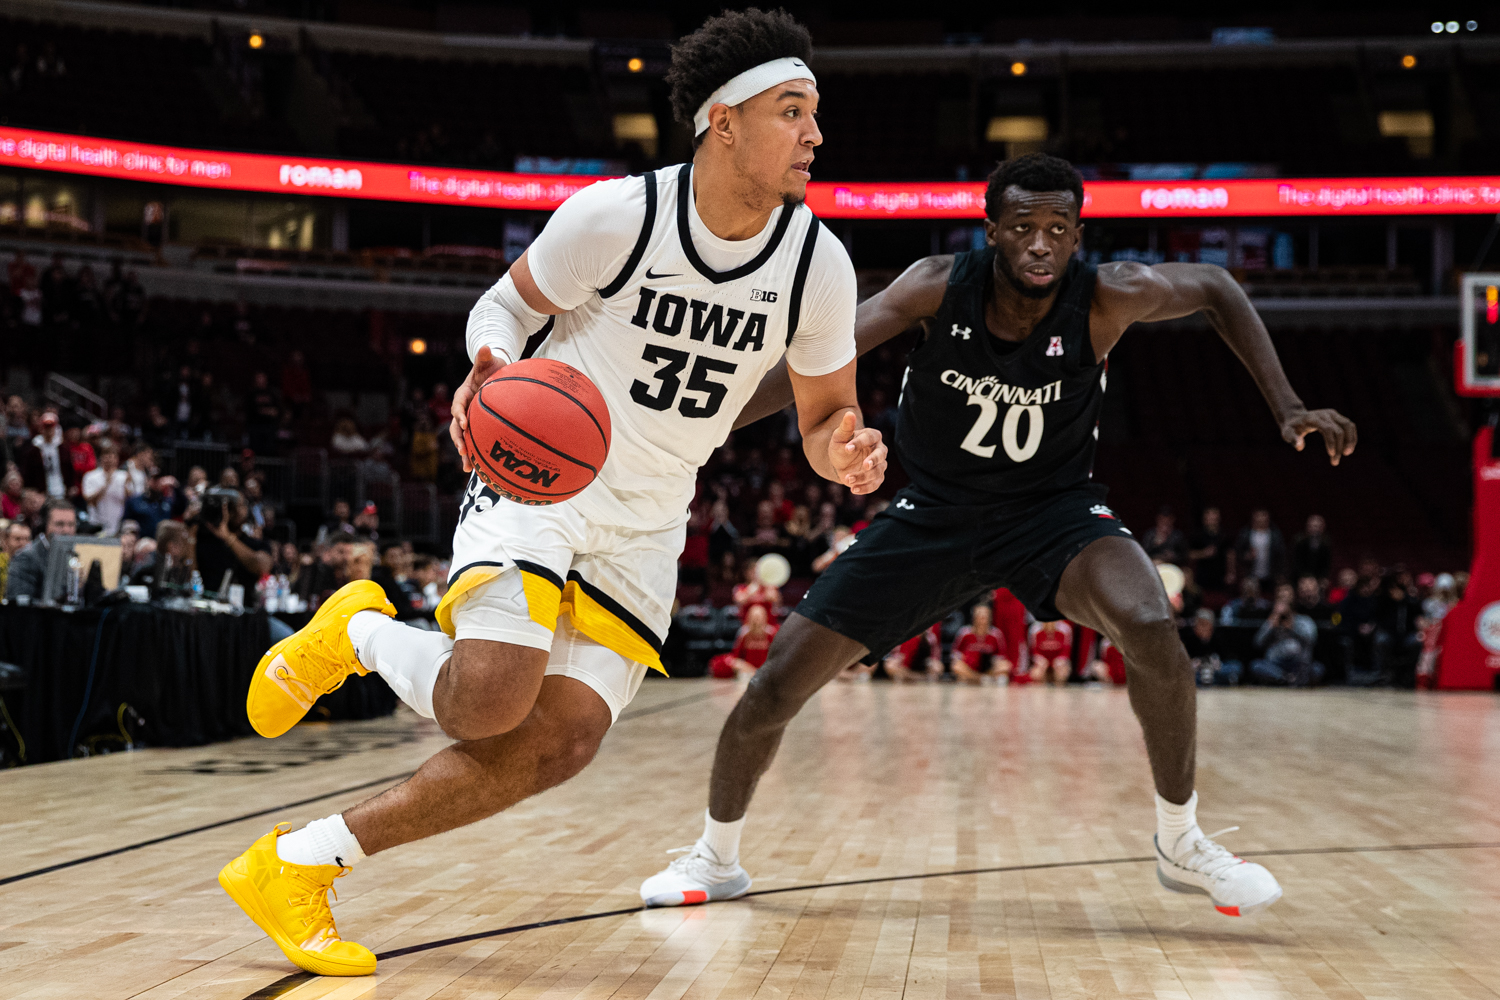 Iowa forward Cordell Pemsl dribbles during a men's basketball match between Iowa and Cincinnati at the United Center in Chicago on Saturday, Dec. 21, 2019.